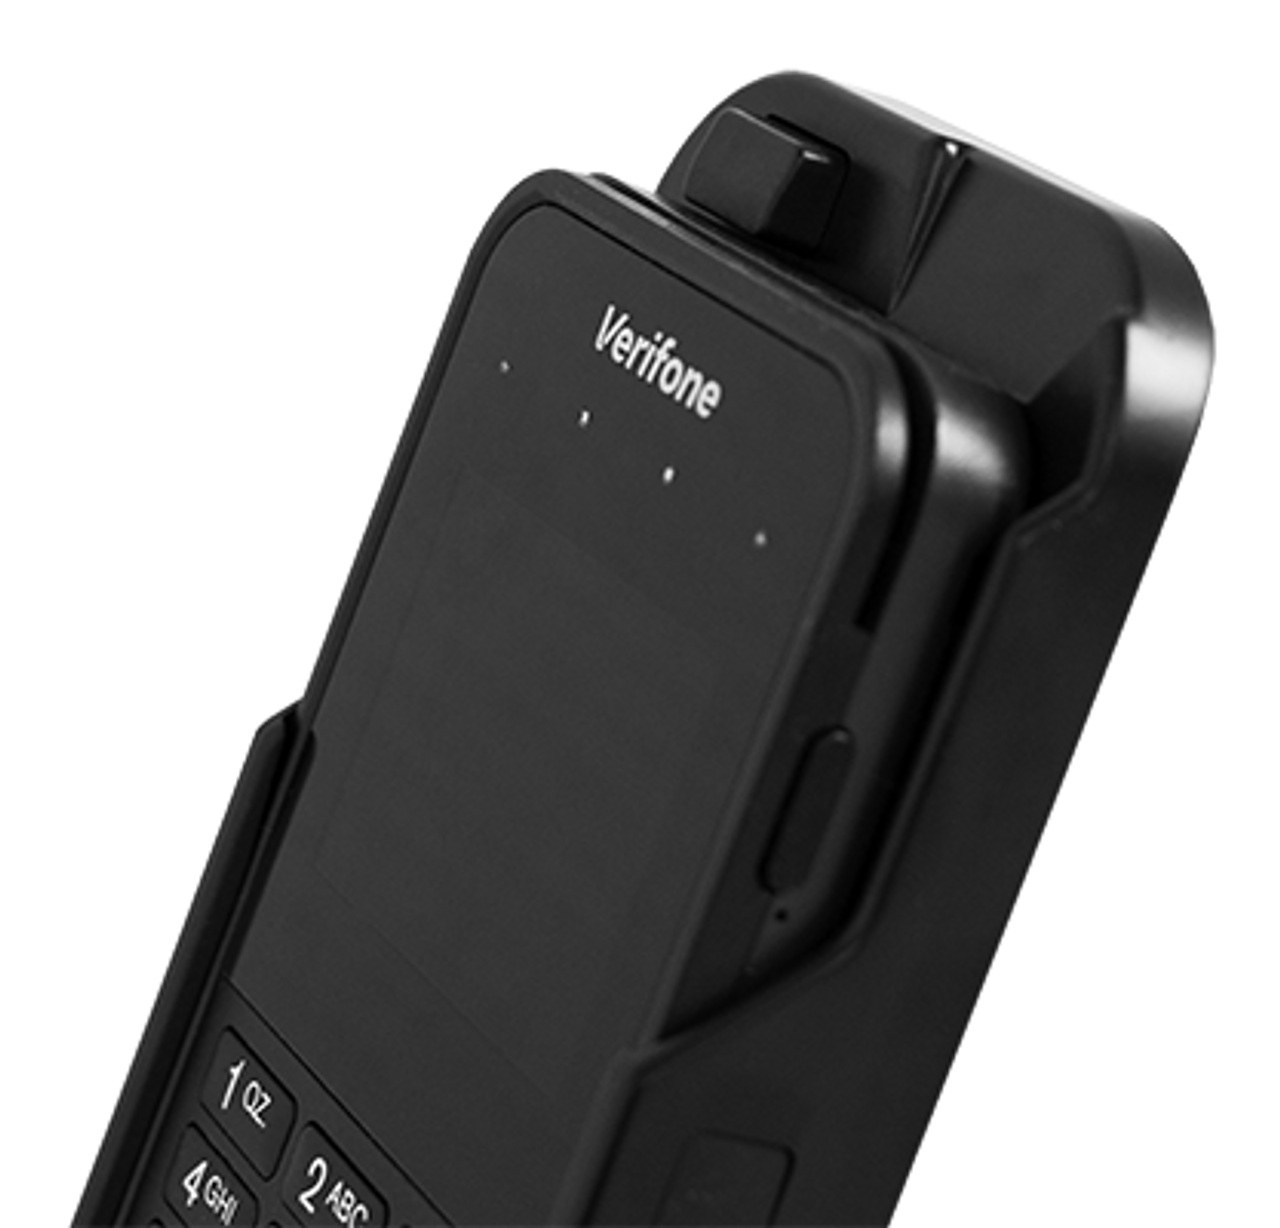 The Verge E355 Square Base Non-Charging Stand for Verifone E355 provides security as well as mobility.